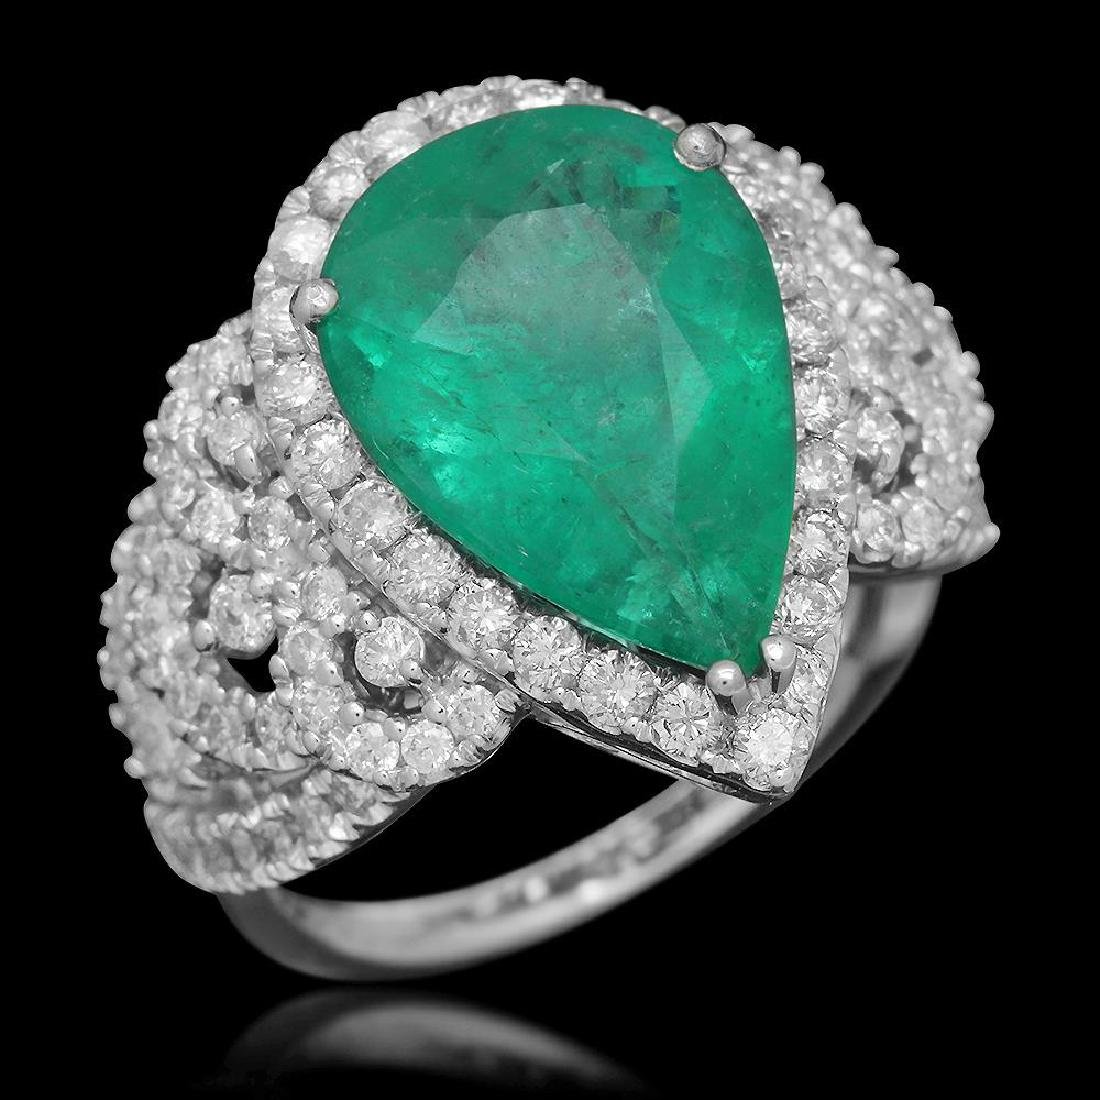 14K Gold 4.55 Emerald 1.20 Diamond Ring